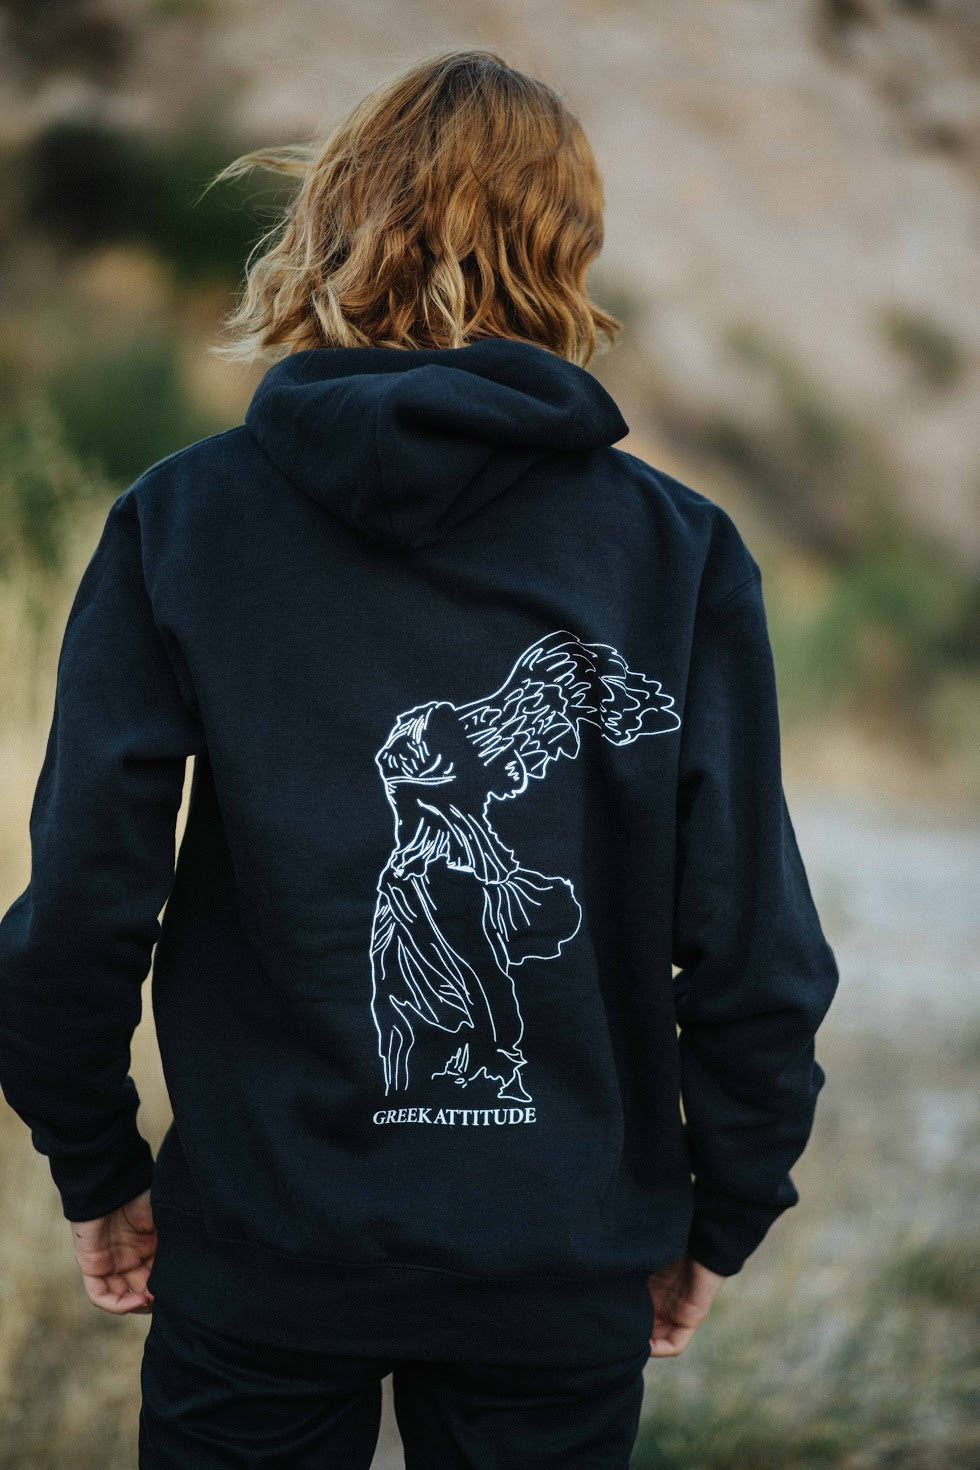 Nike of Samothrace - Greek is an Attitude